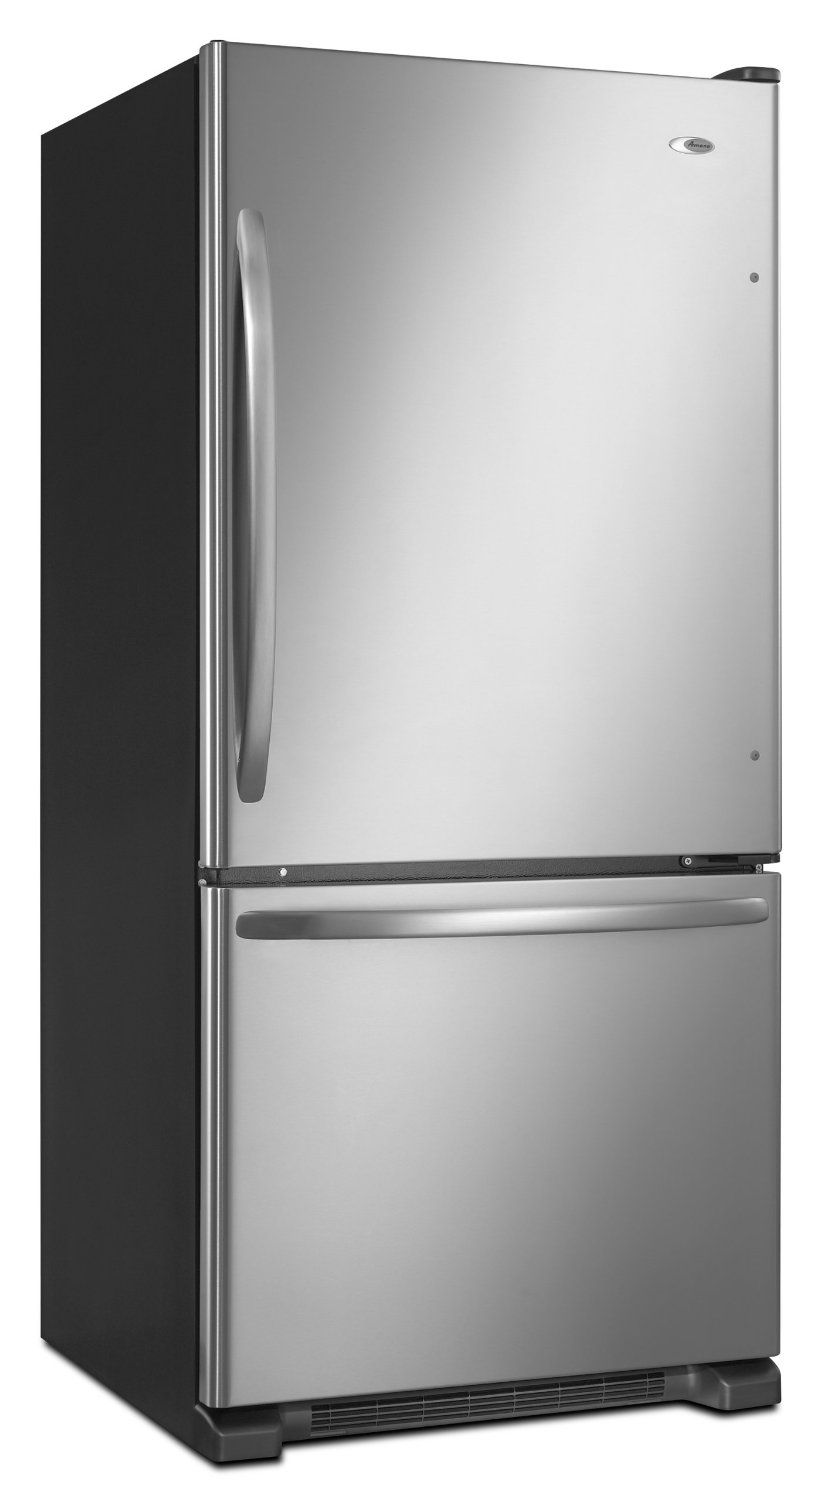 sharp refrigerator price list. beautiful sharp refrigerator. http://www.yourrefrigeratorguide.com/sharp- refrigerator price list